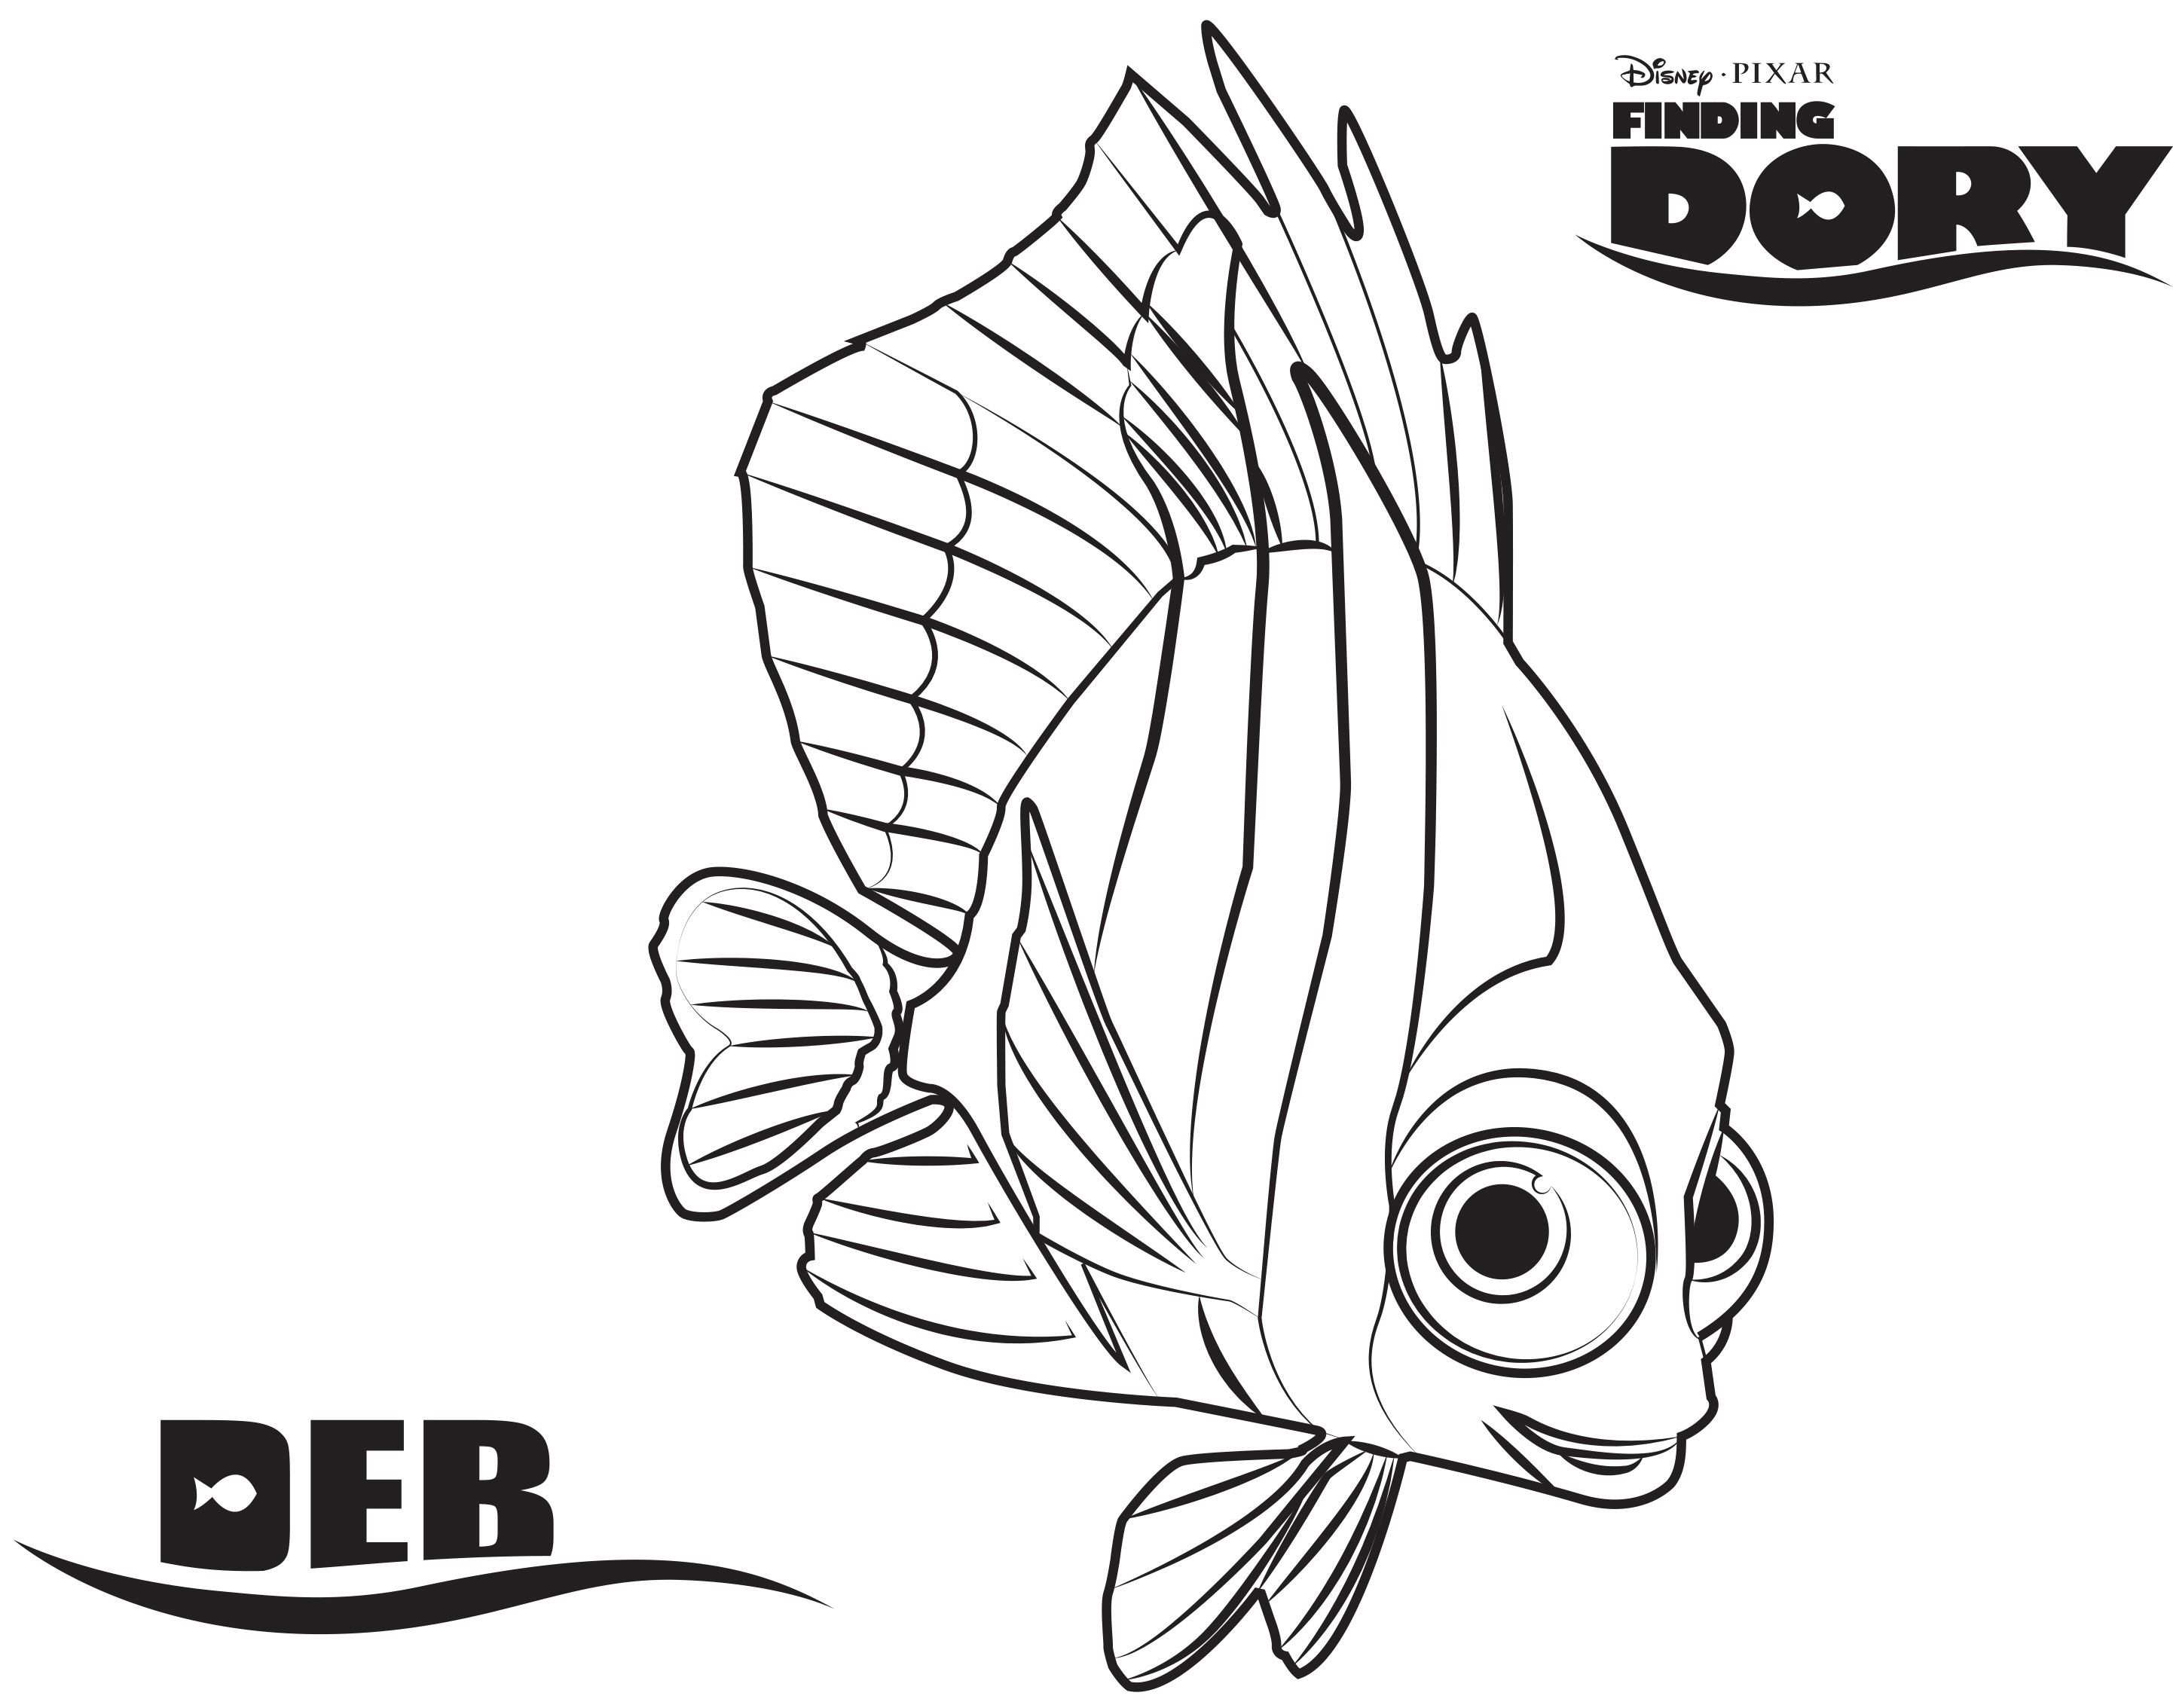 Printen Finding Nemo Coloring Pages Nemo Coloring Pages